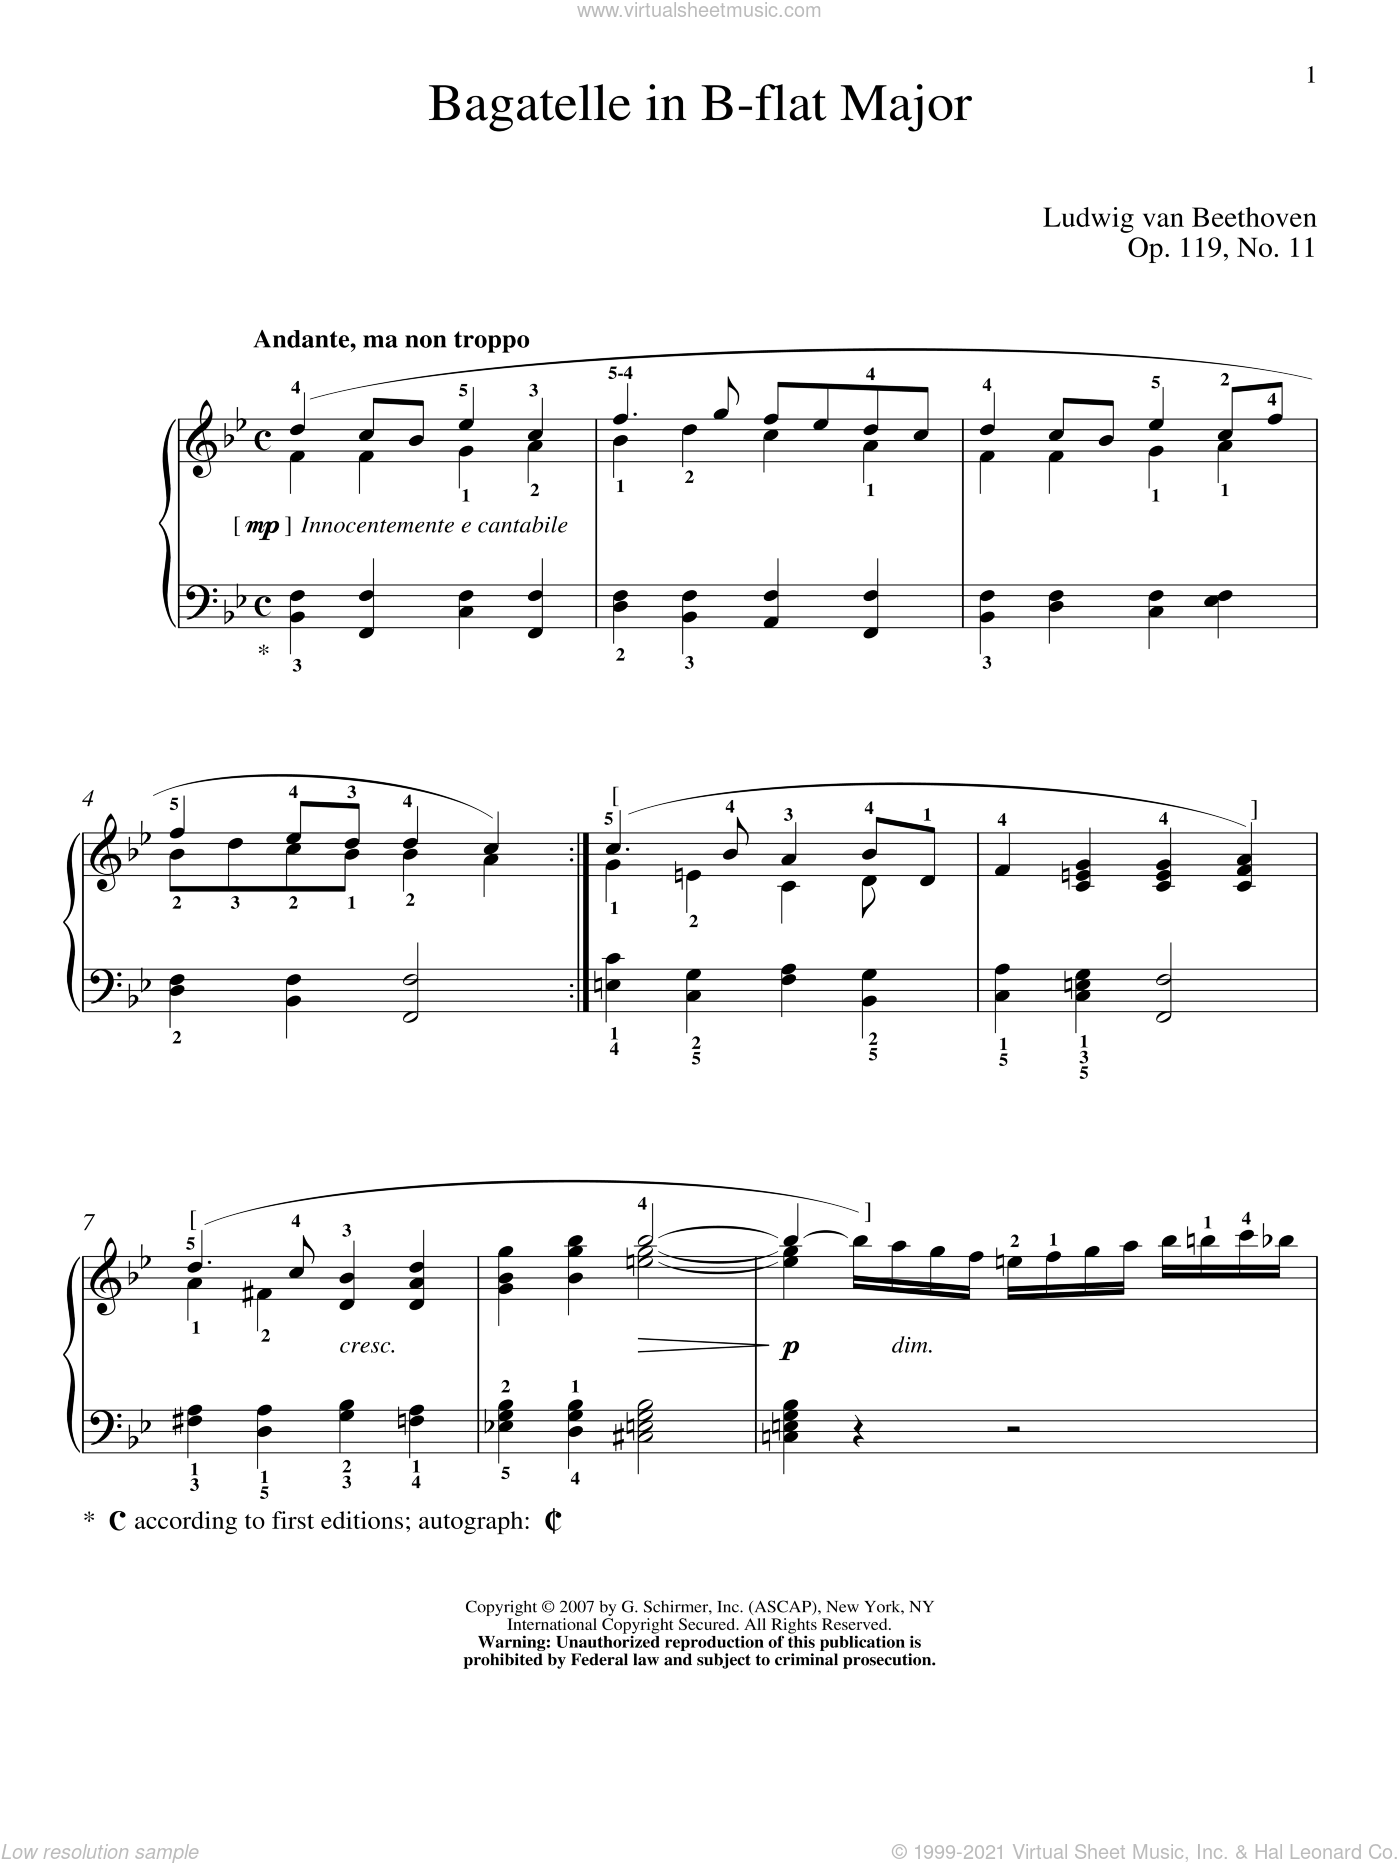 Bagatelle In B-flat Major, Op. 119, No. 11 sheet music for piano solo by Ludwig van Beethoven and Matthew Edwards, classical score, intermediate skill level